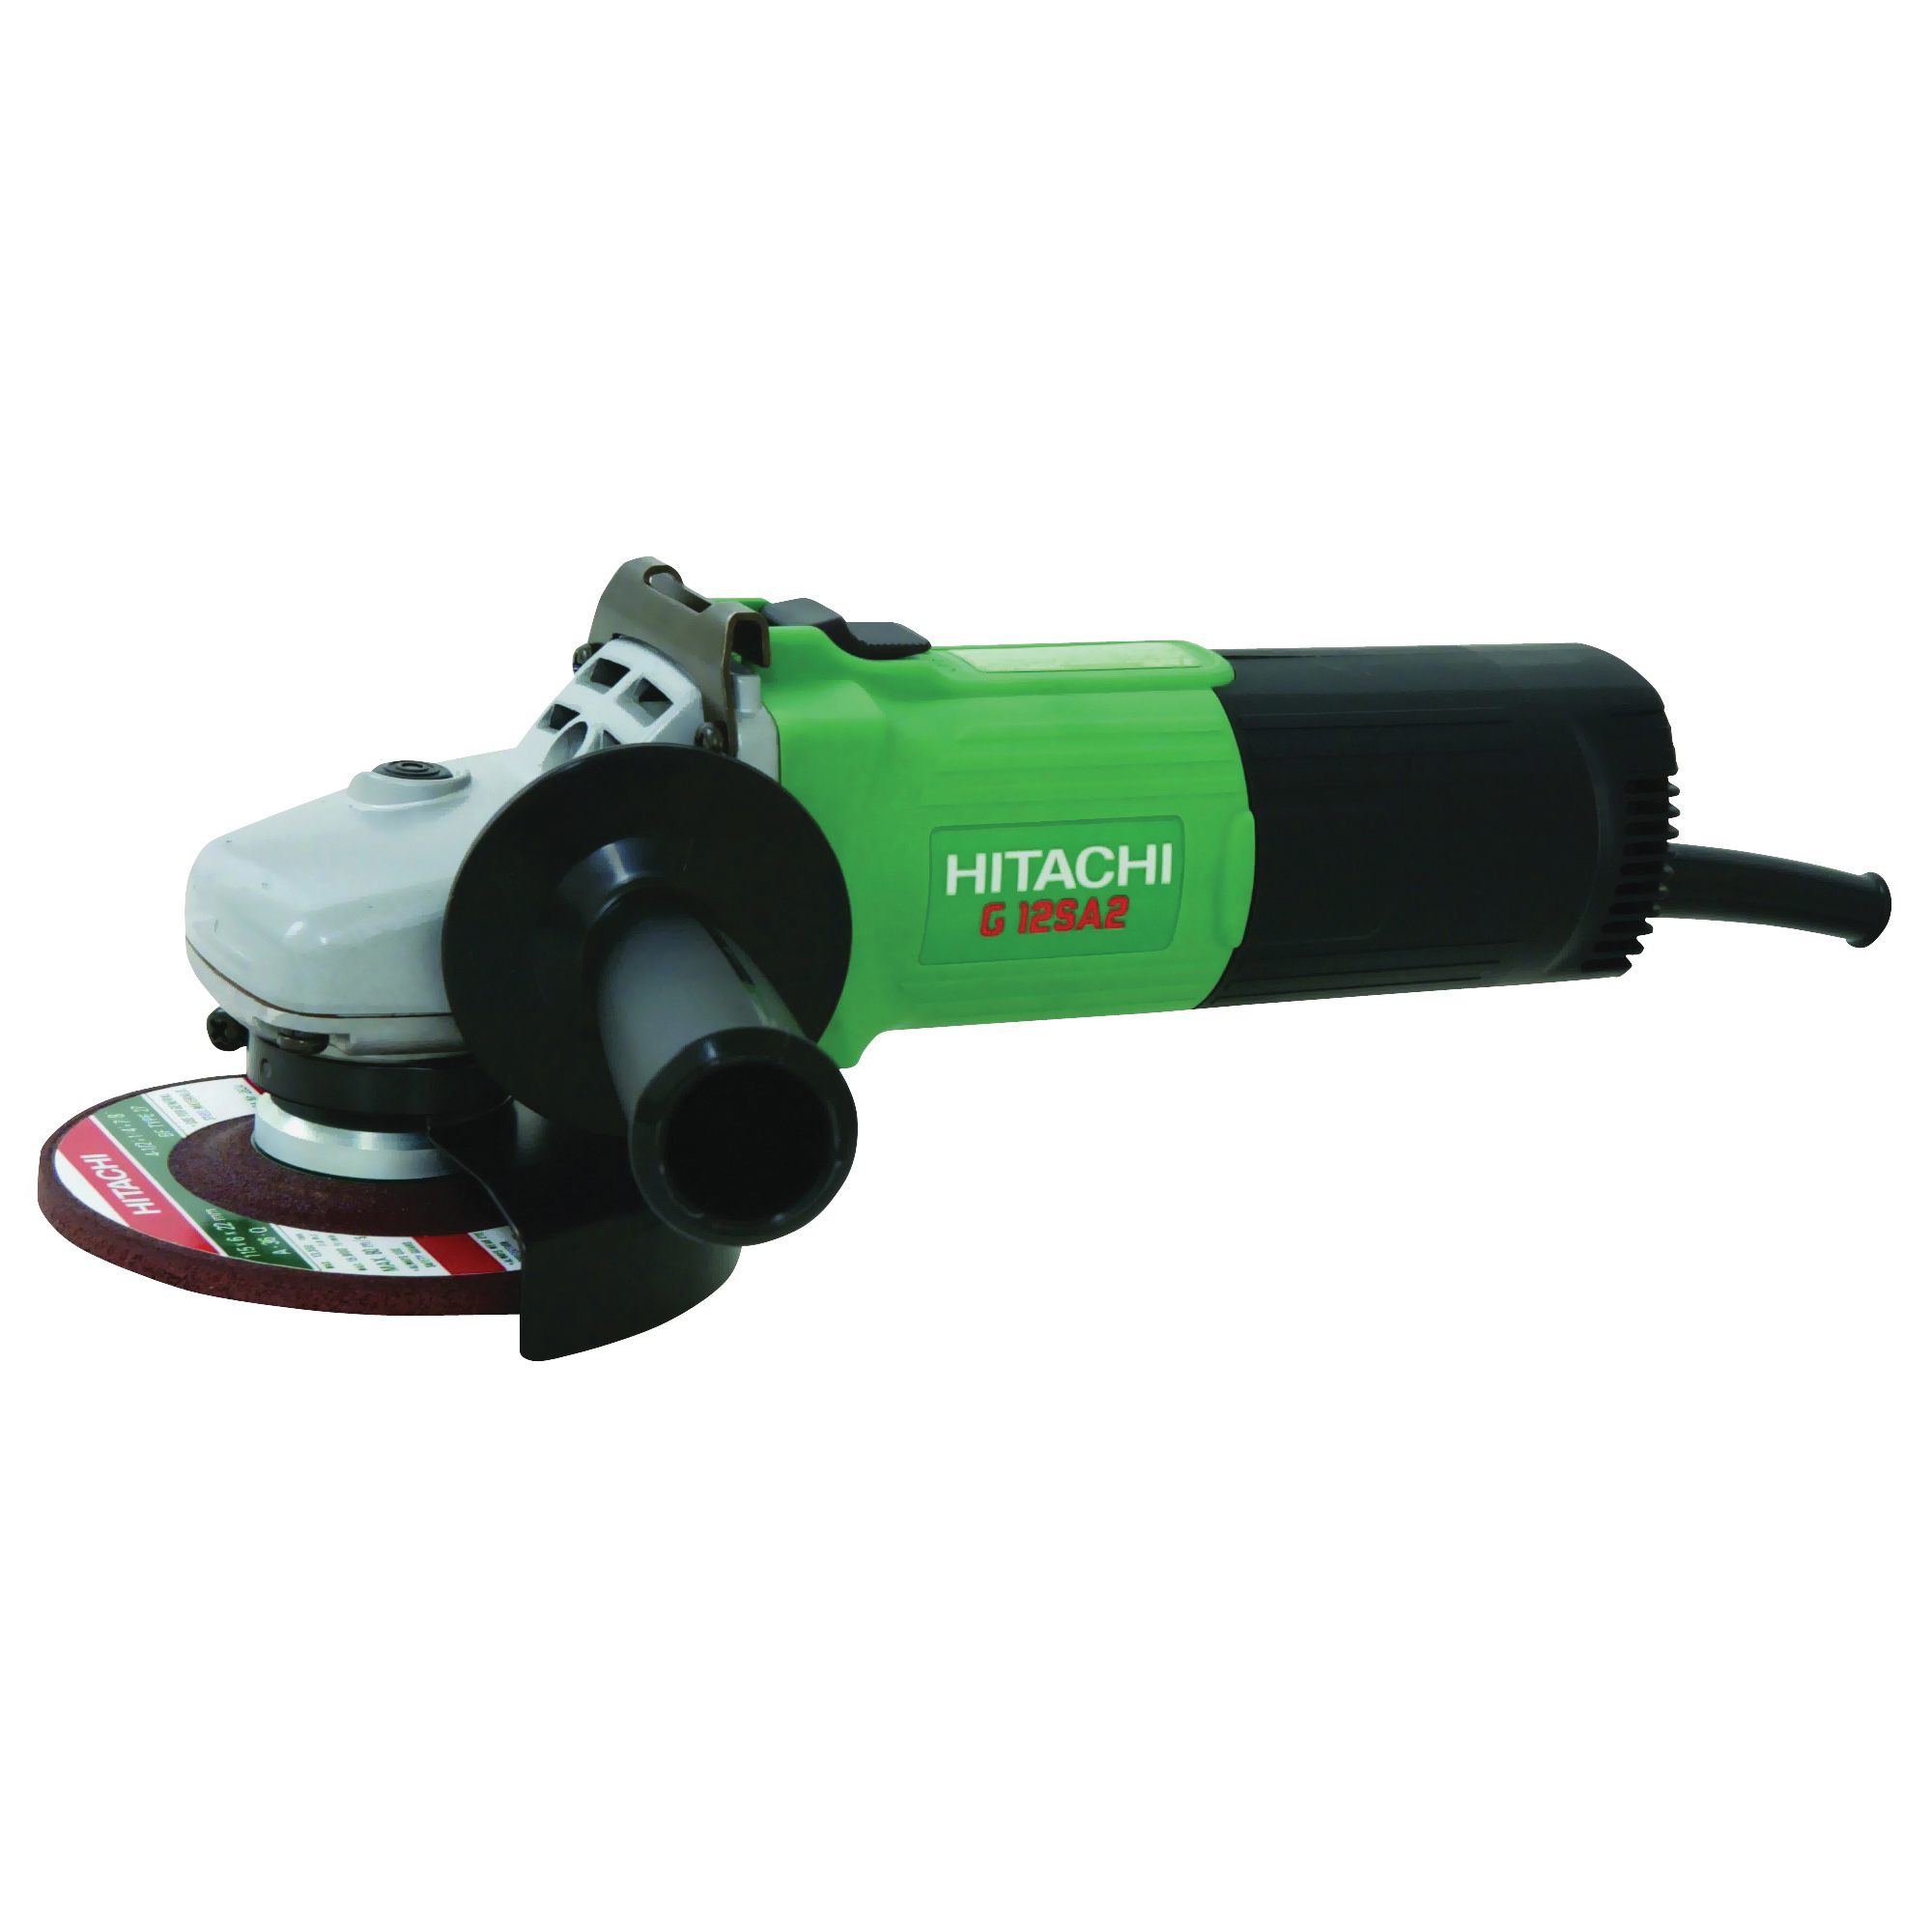 Picture of HITACHI G12SA3 Angle Grinder, 8 A, 910 to 1900 W, 5/8-11 Spindle, 4-1/2 in Dia Wheel, 10,000 rpm Speed